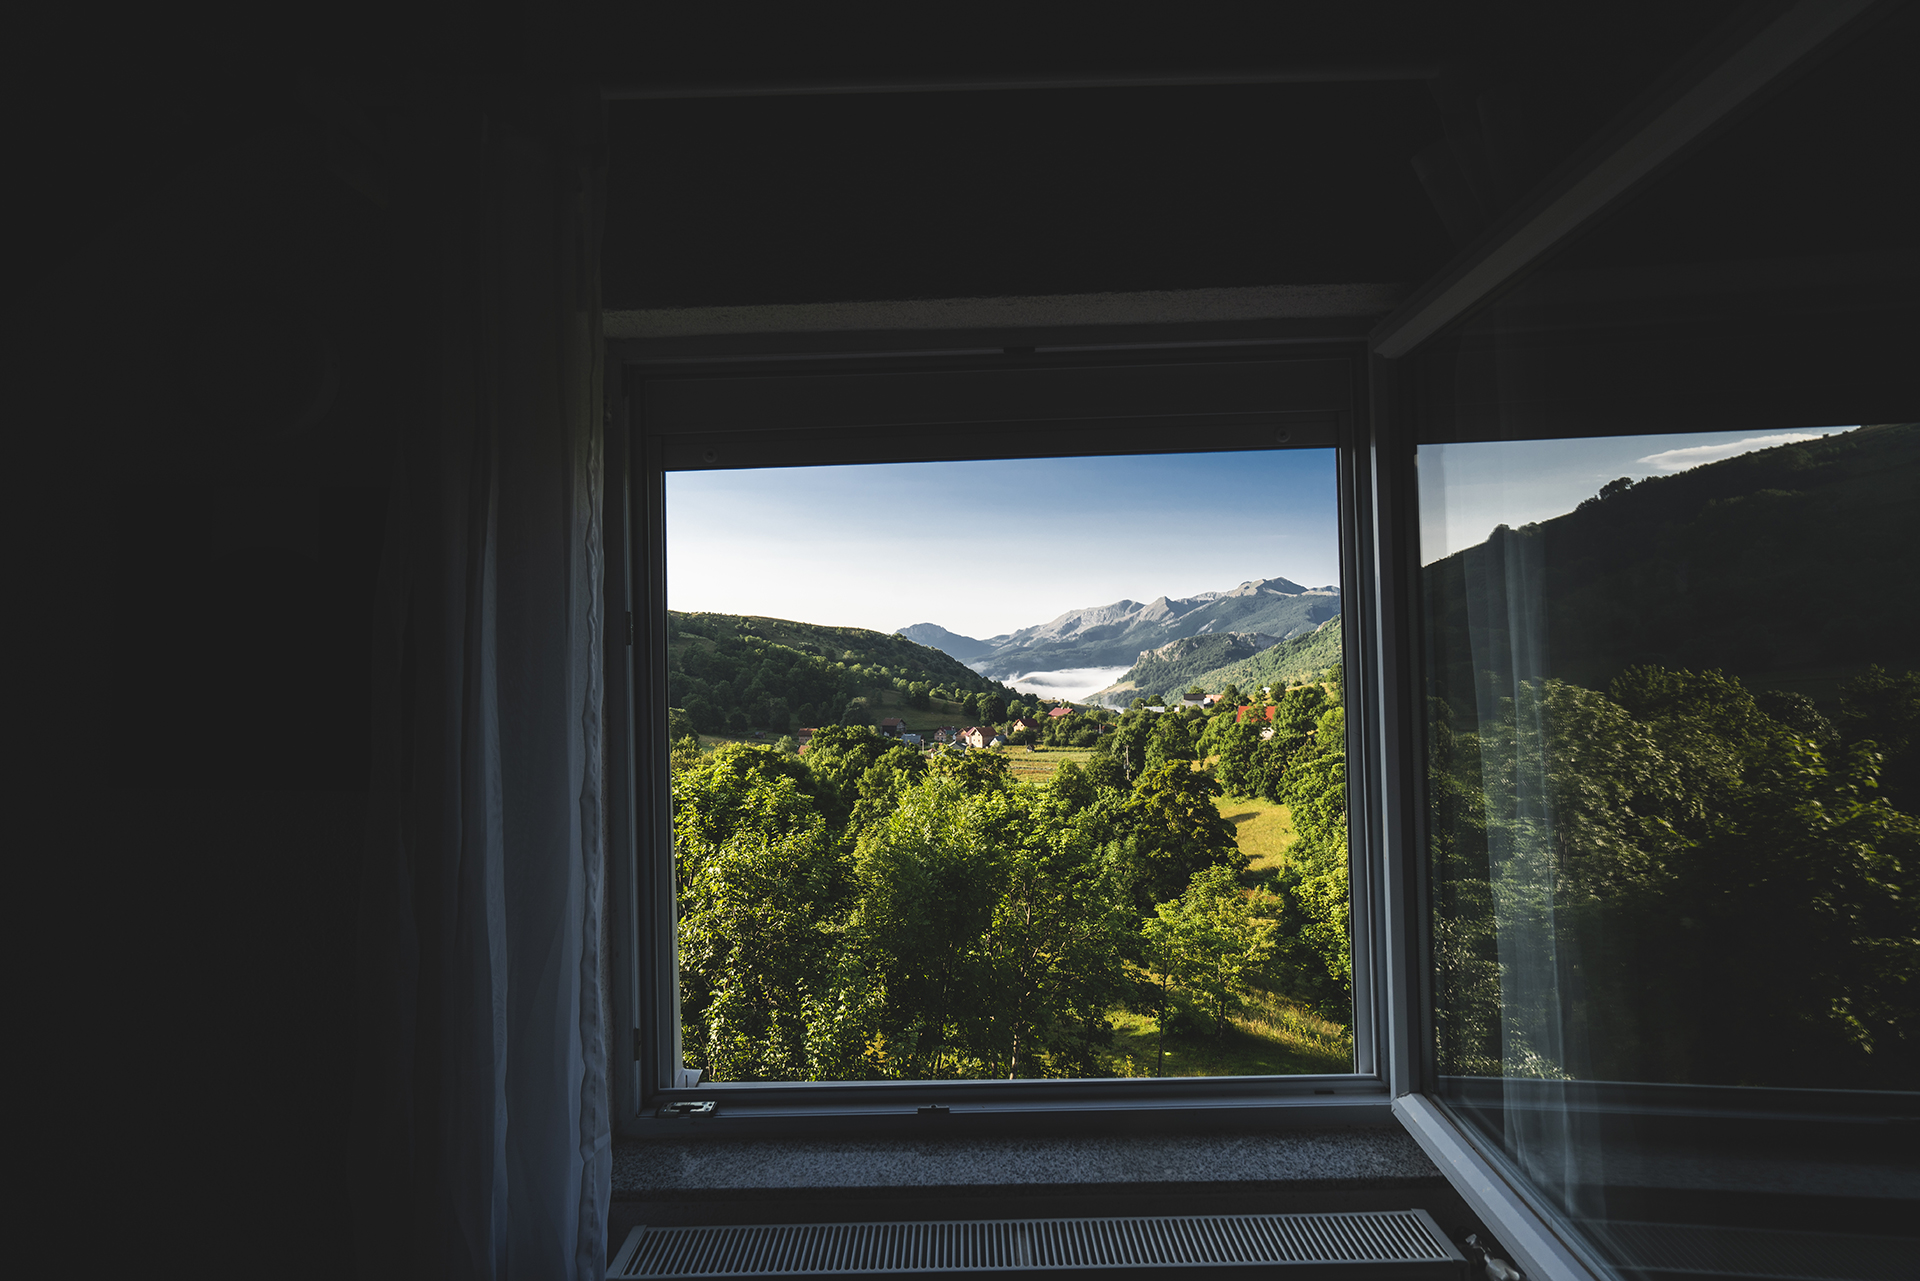 View from the window of my cozy hut